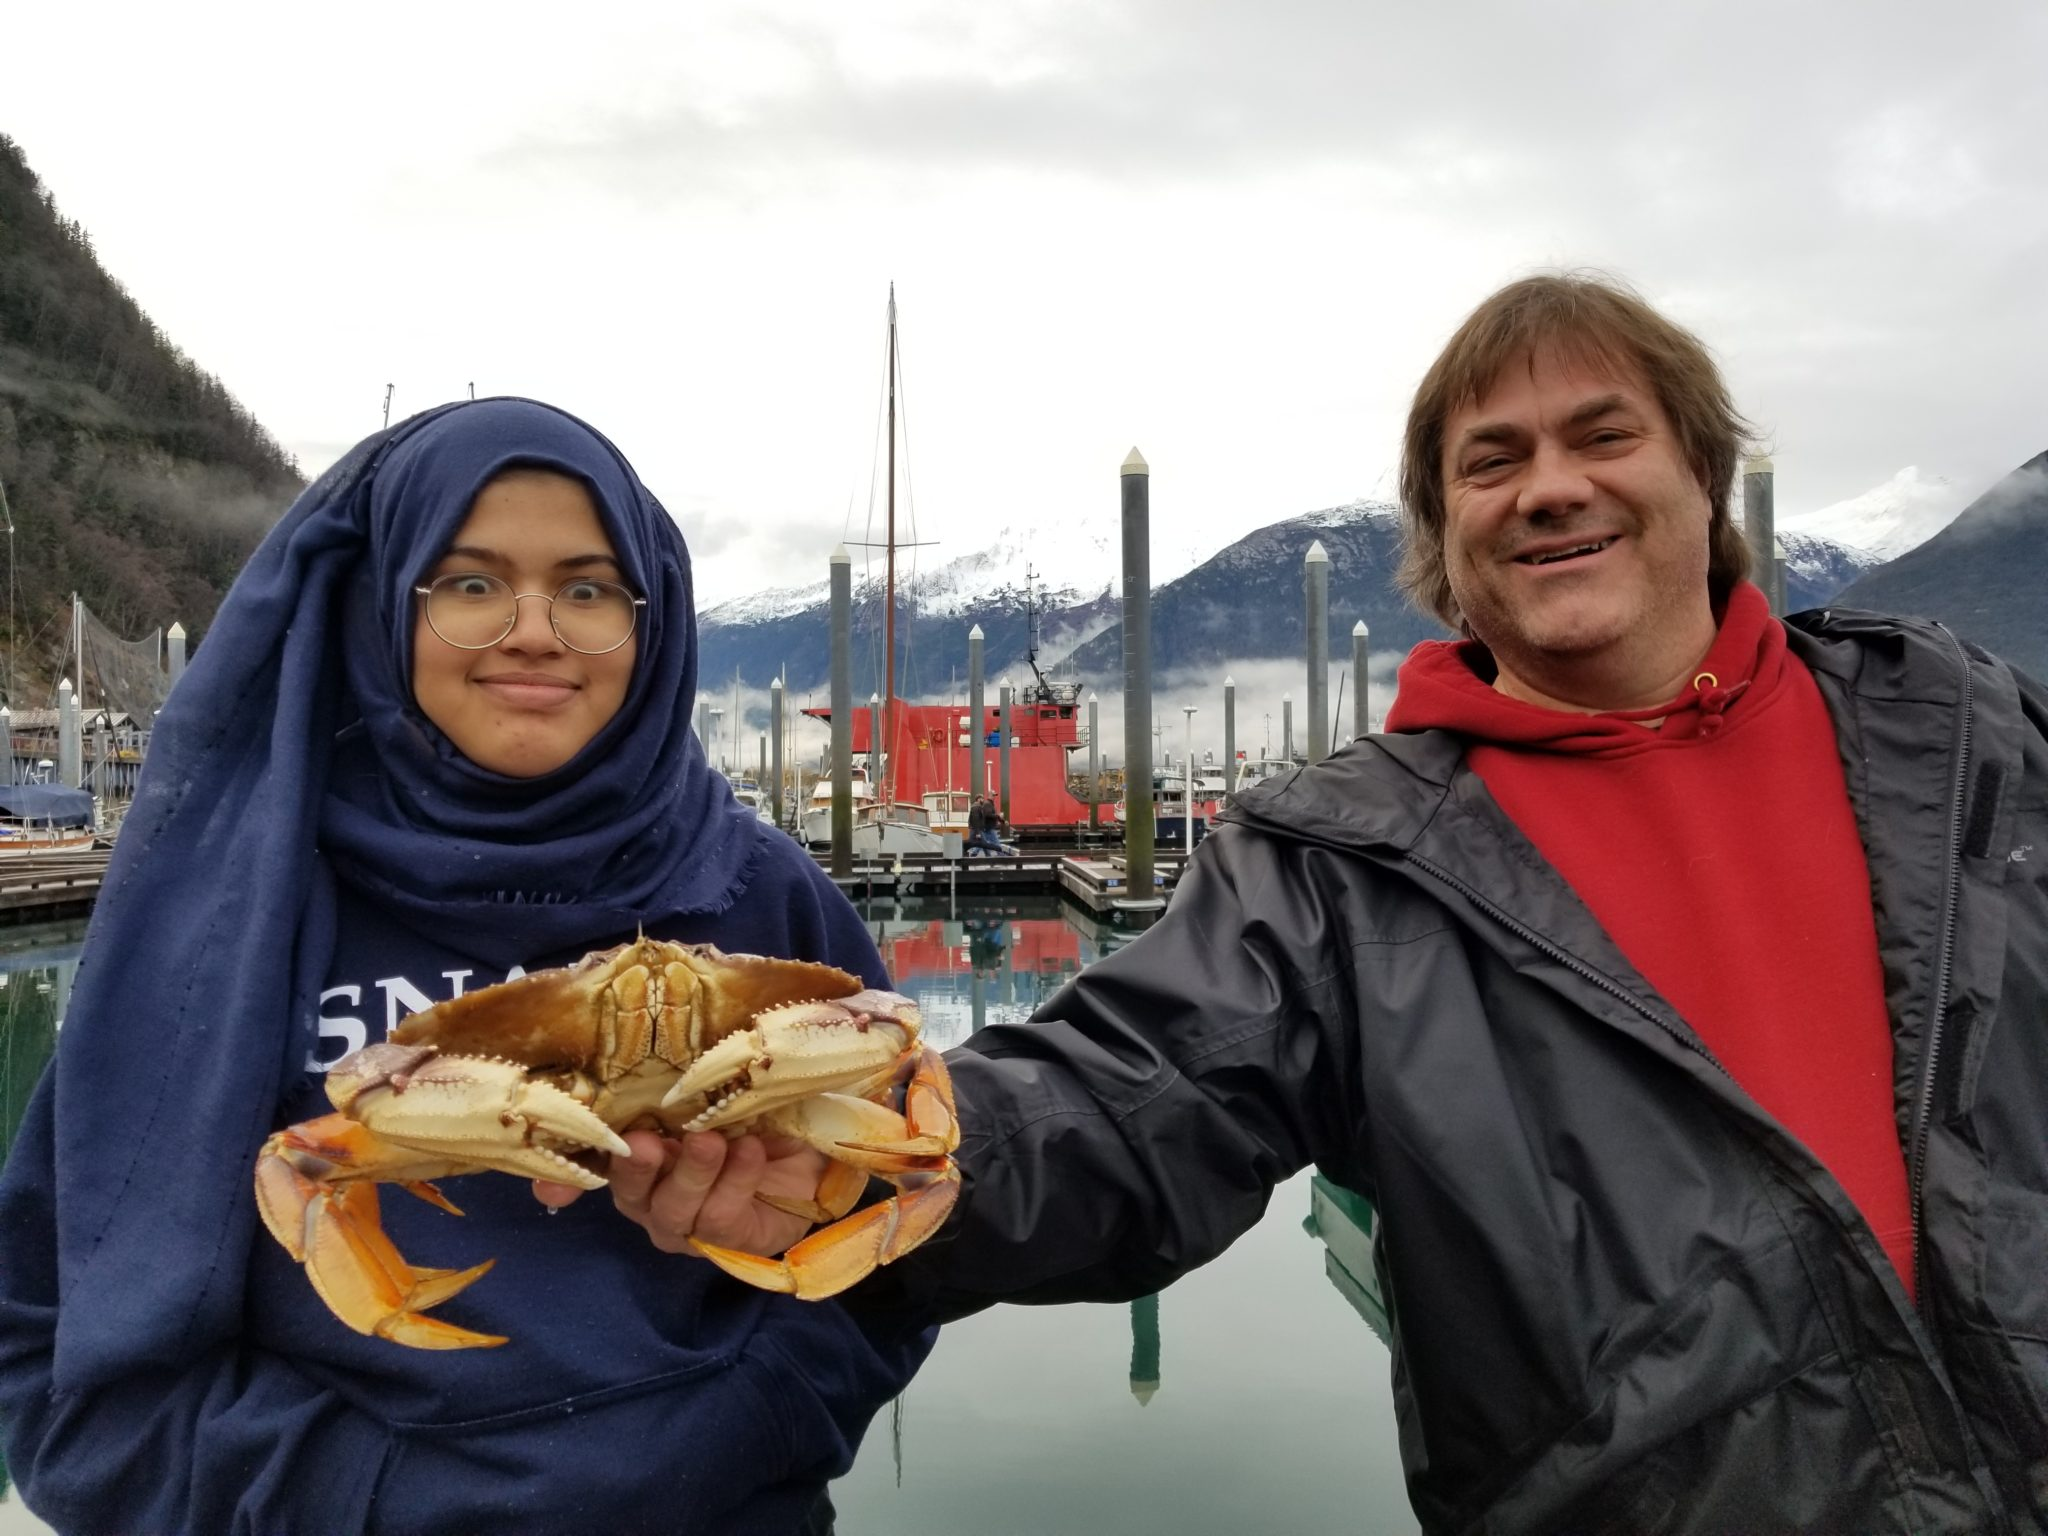 From Bangladesh to Skagway, a student's once in a lifetime journey